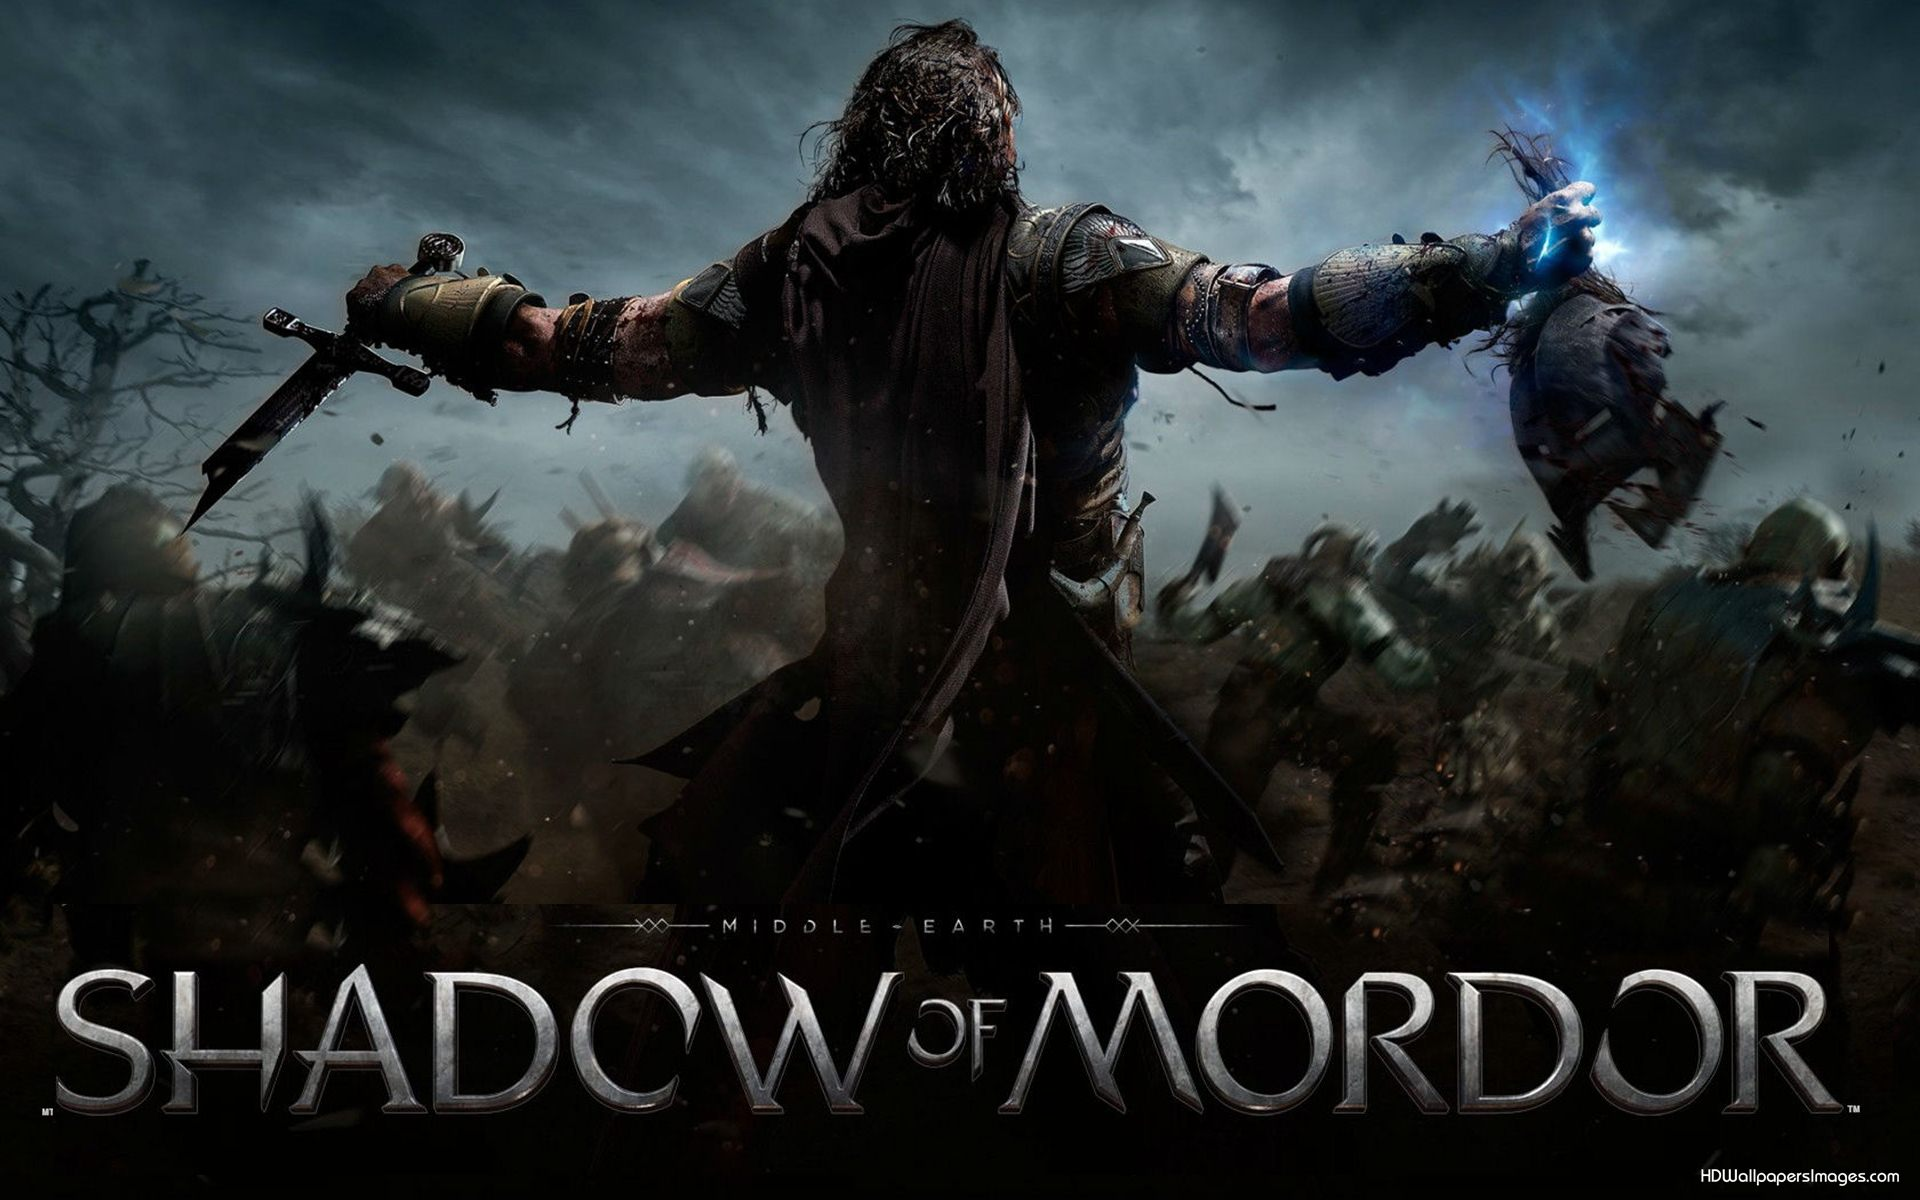 Middle-earth: Shadow of Mordor Гифт РУ+СНГ Sale 1 штука